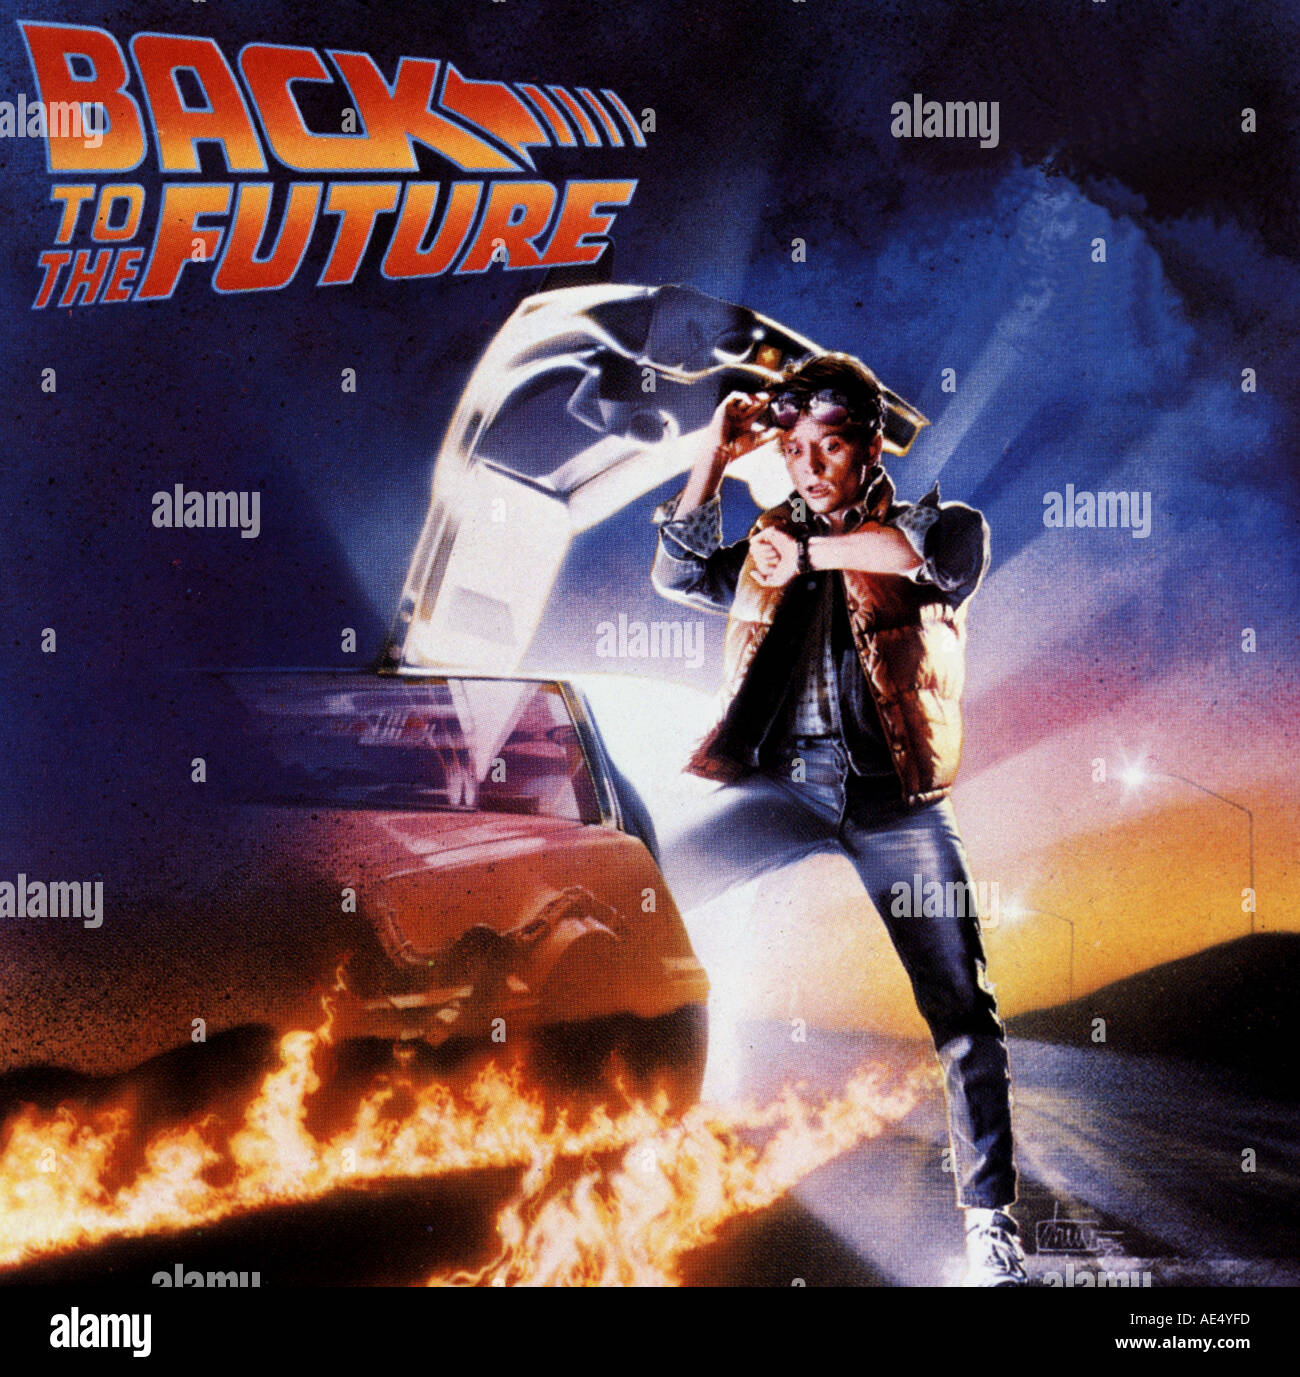 BACK TO THE FUTURE Poster of the 1985 film starring Michael J Fox - Stock Image